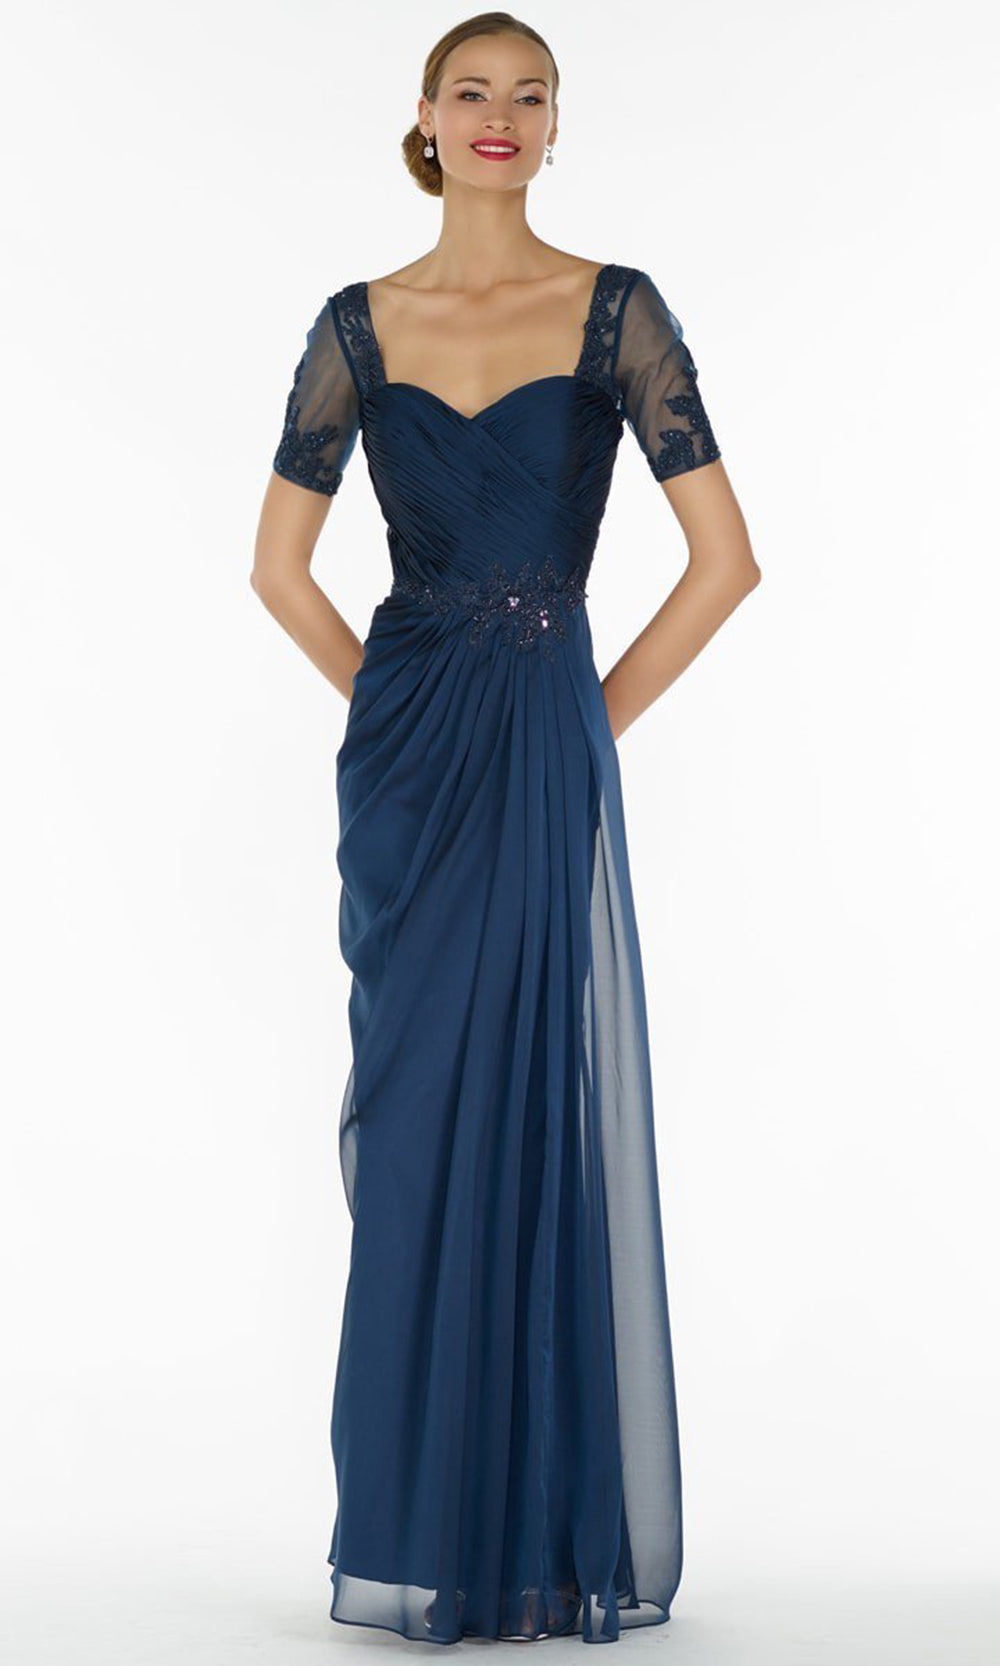 Alyce Paris - Black Label - 29580 Lace Embellished Chiffon Long Gown from Alyce Paris